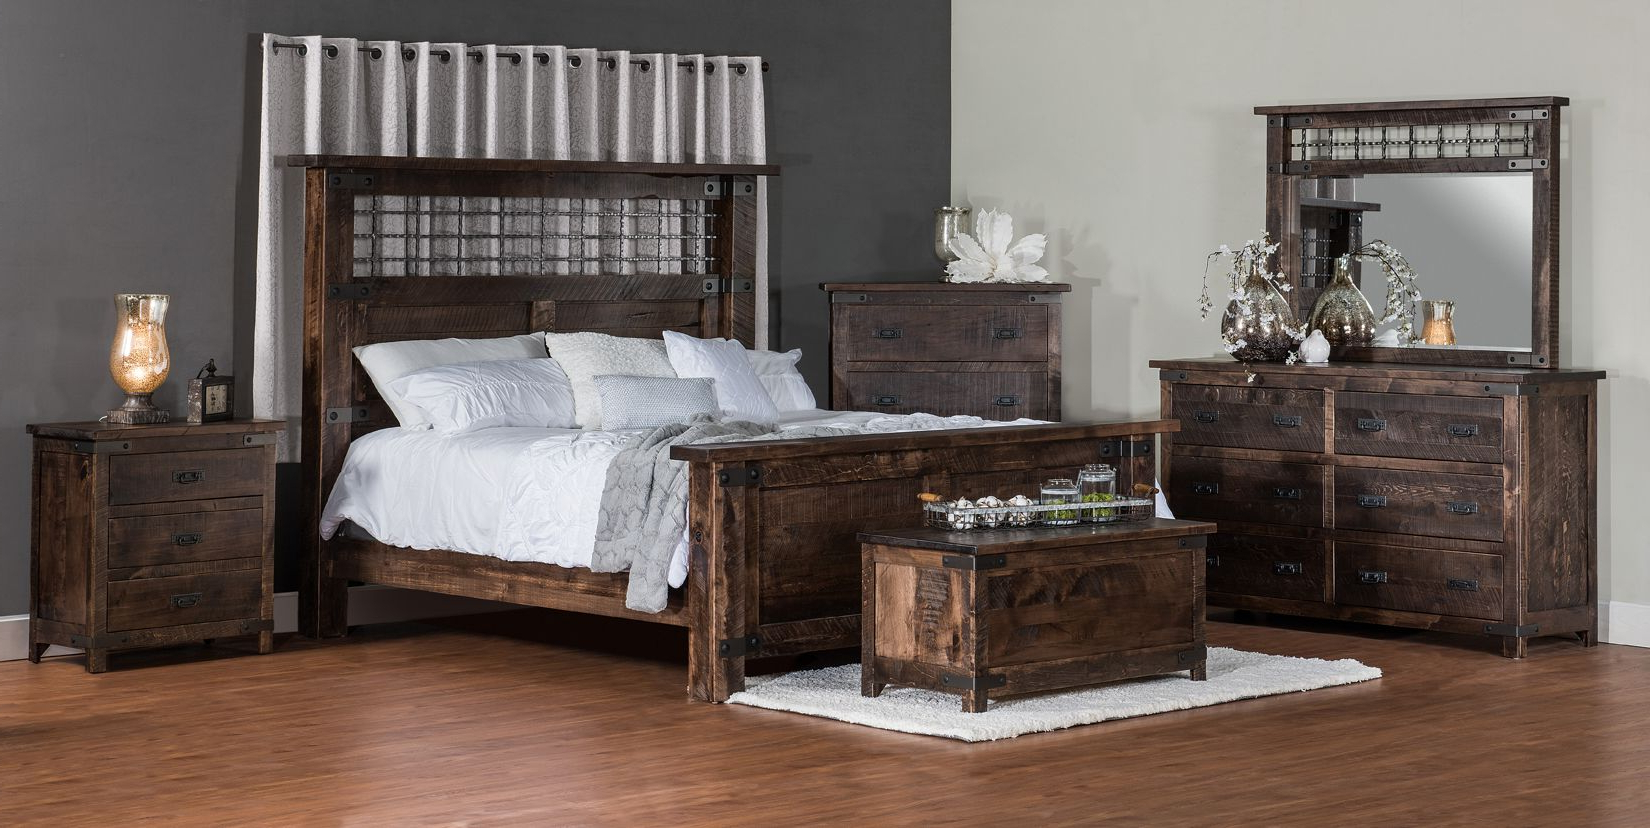 [%up To 33% Off Ironwood Bedroom Set – Amish Outlet Store Pertaining To Current Ironwood 4 Door Sideboards|ironwood 4 Door Sideboards Intended For Trendy Up To 33% Off Ironwood Bedroom Set – Amish Outlet Store|popular Ironwood 4 Door Sideboards For Up To 33% Off Ironwood Bedroom Set – Amish Outlet Store|recent Up To 33% Off Ironwood Bedroom Set – Amish Outlet Store Throughout Ironwood 4 Door Sideboards%] (View 19 of 20)